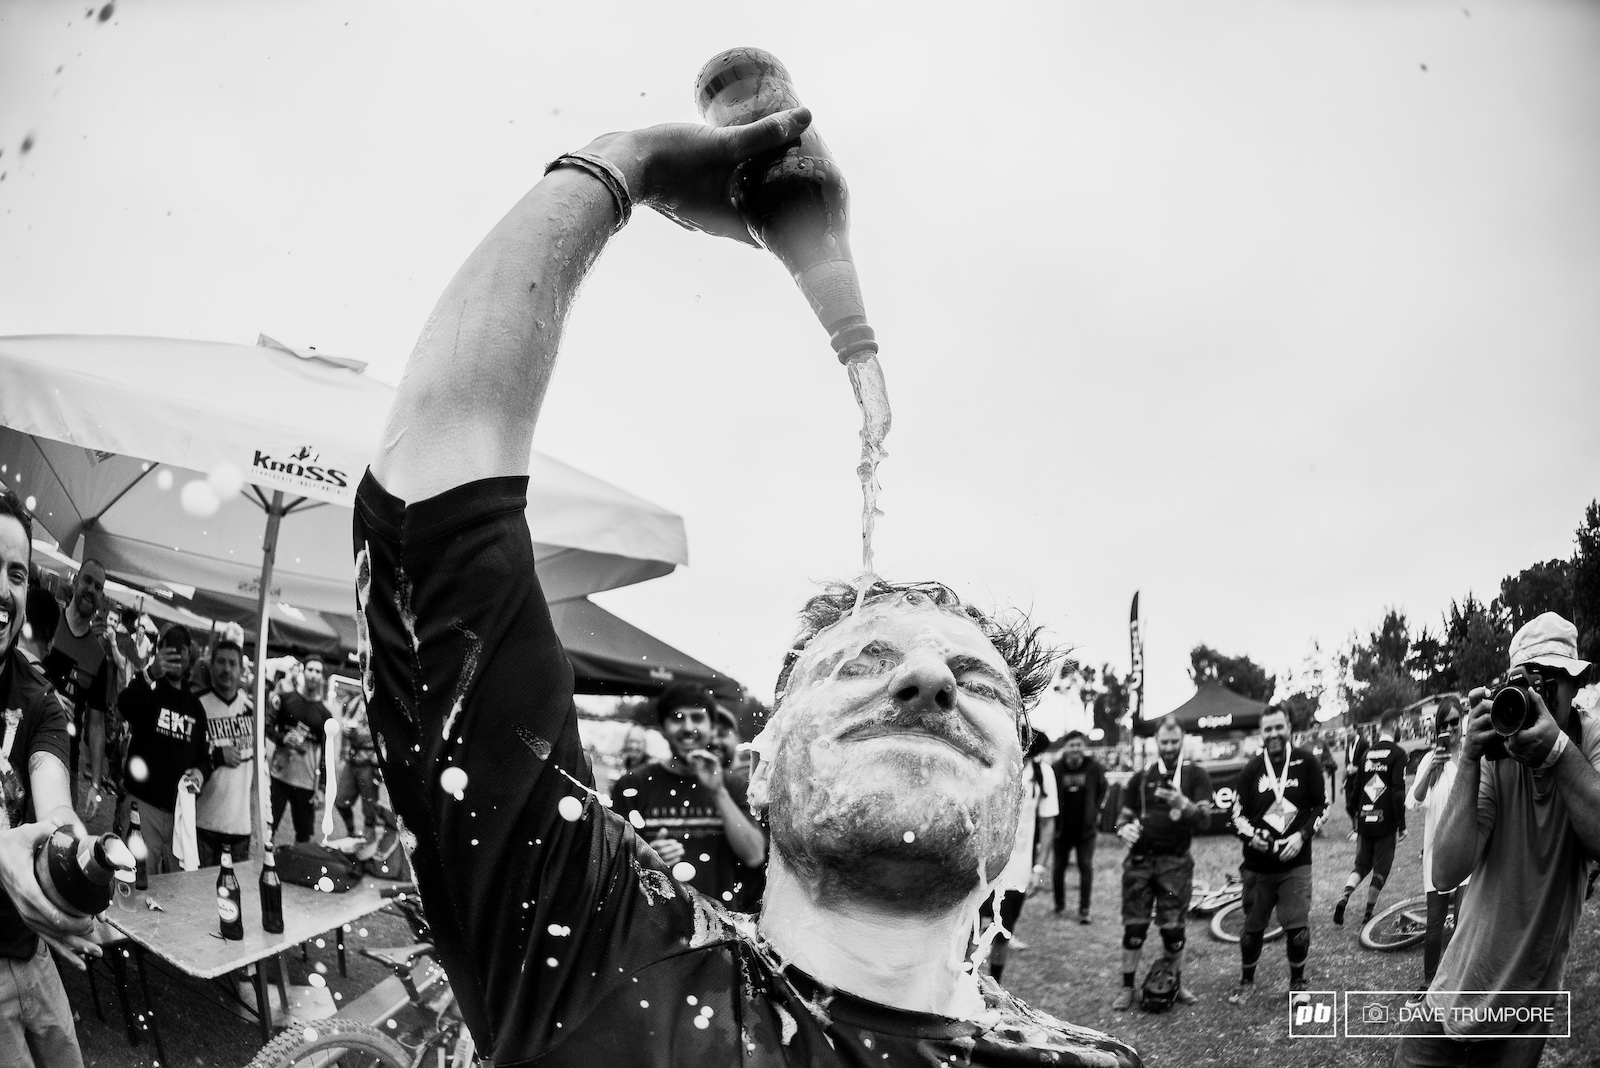 Rather than take the hypothermia plunge into the Pacific Jesse Melamed opted for a shower of cold Chilean beer instead.